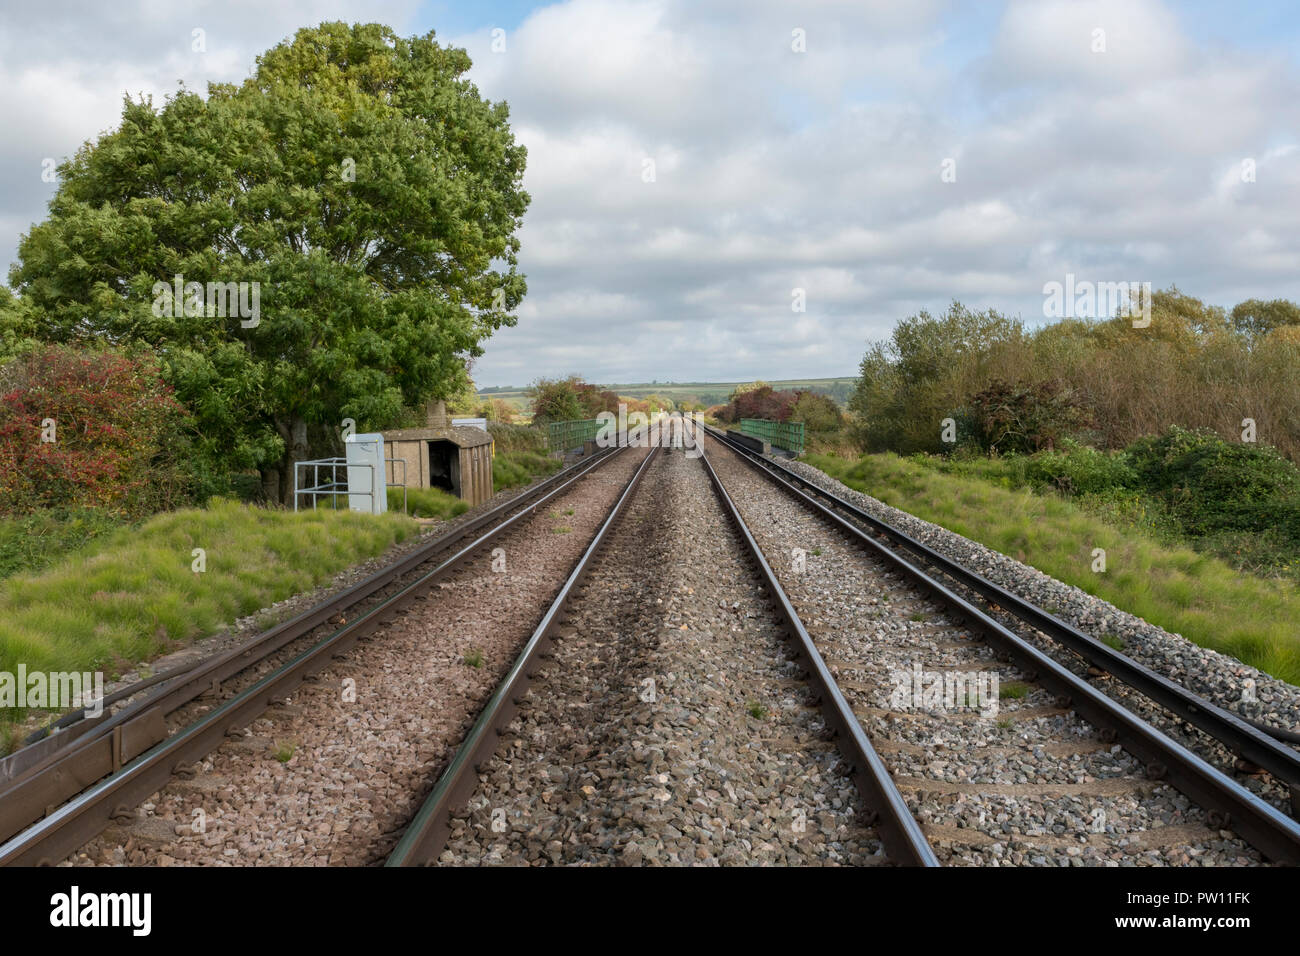 railway lines or rail train tracks tapering into the distance to a vanishing or disappearing point in the countryside. - Stock Image